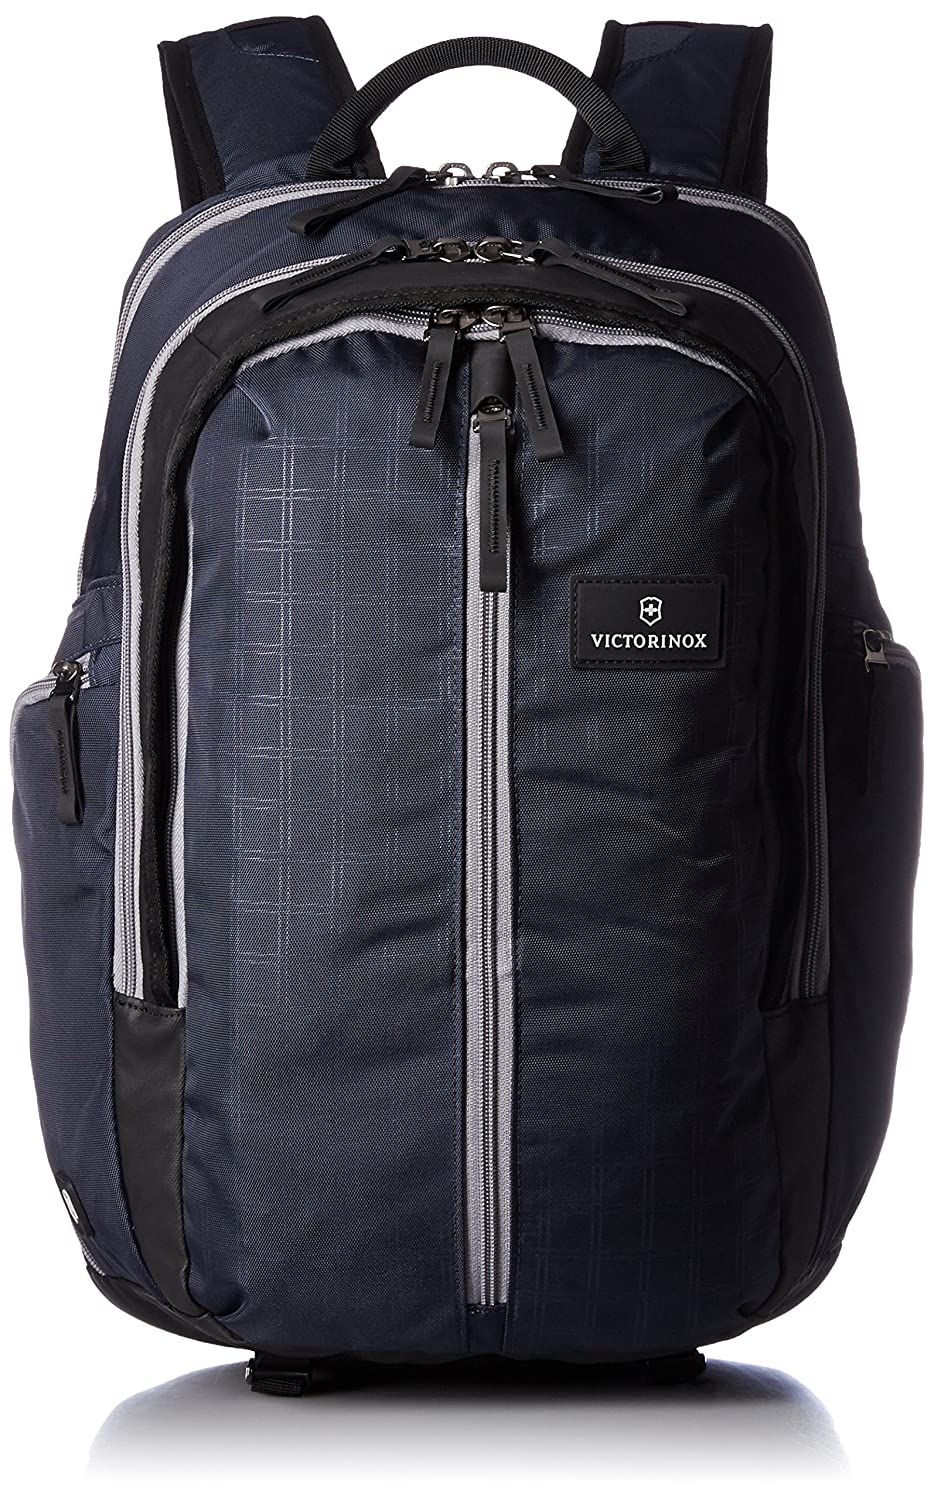 Victorinox Altmont 17 Inch Laptop Backpack